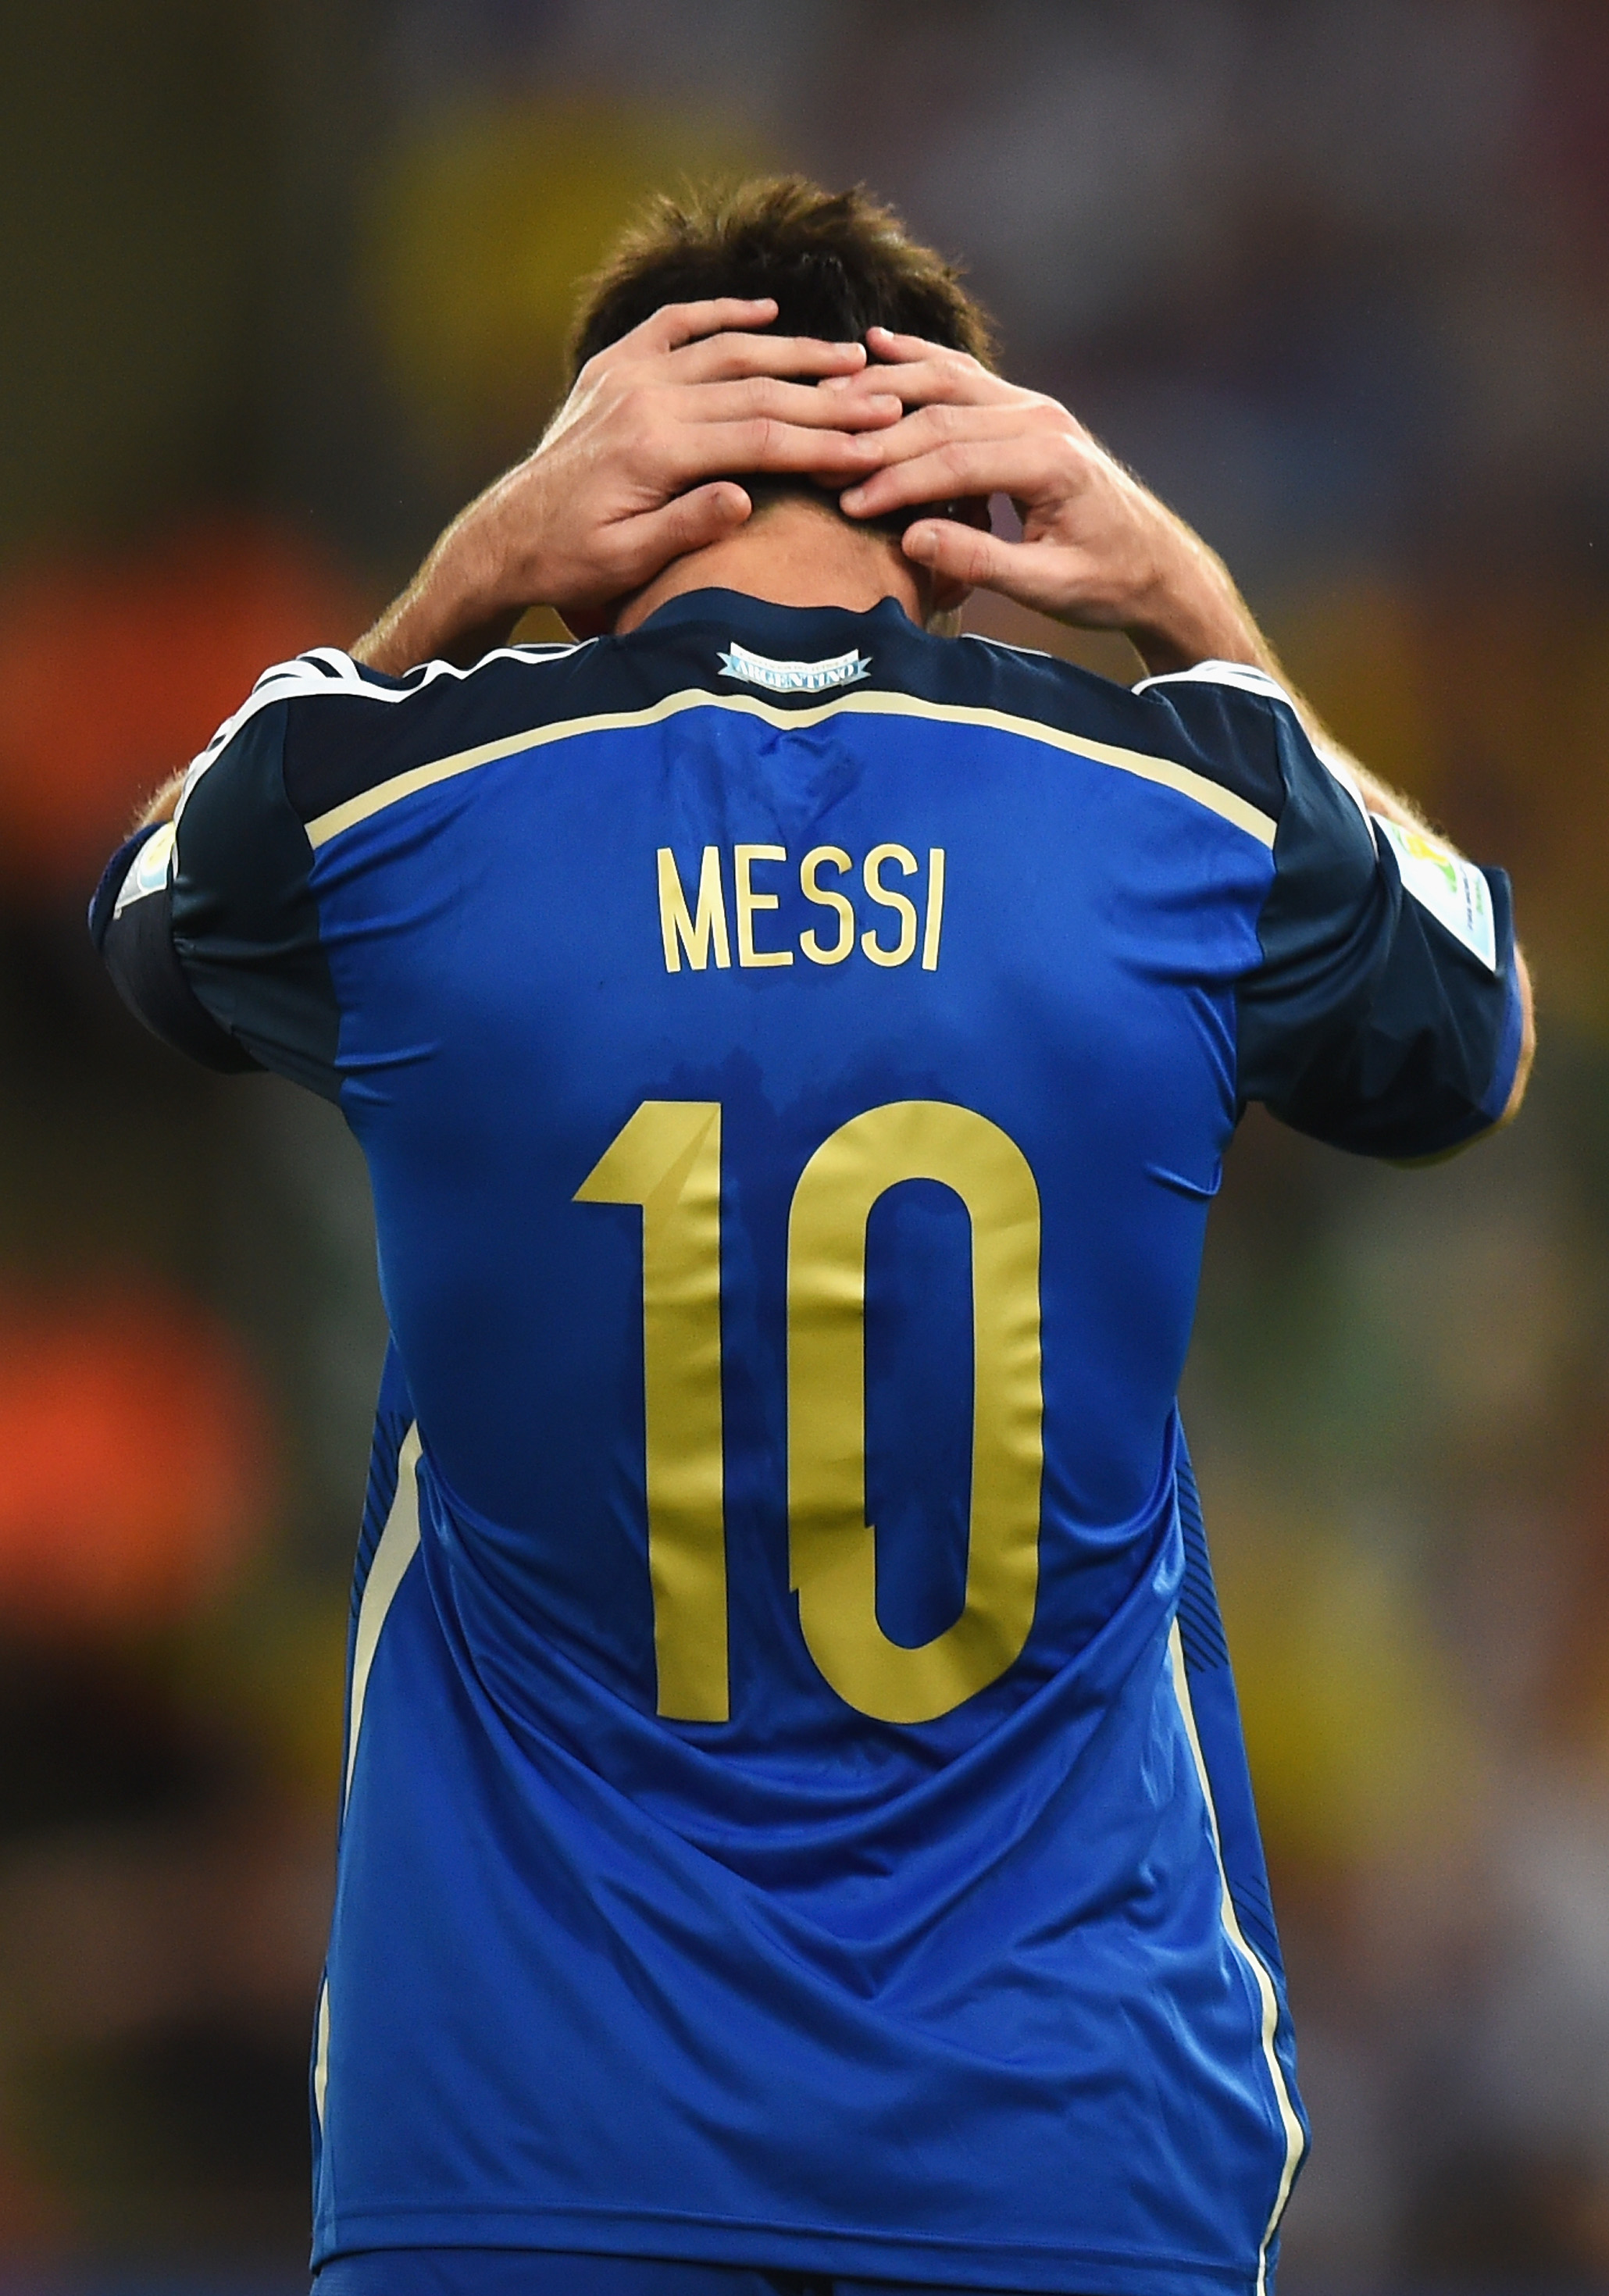 Lionel Messi of Argentina reacts during the 2014 FIFA World Cup match against Germany on July 13 in Rio de Janeiro, Brazil.